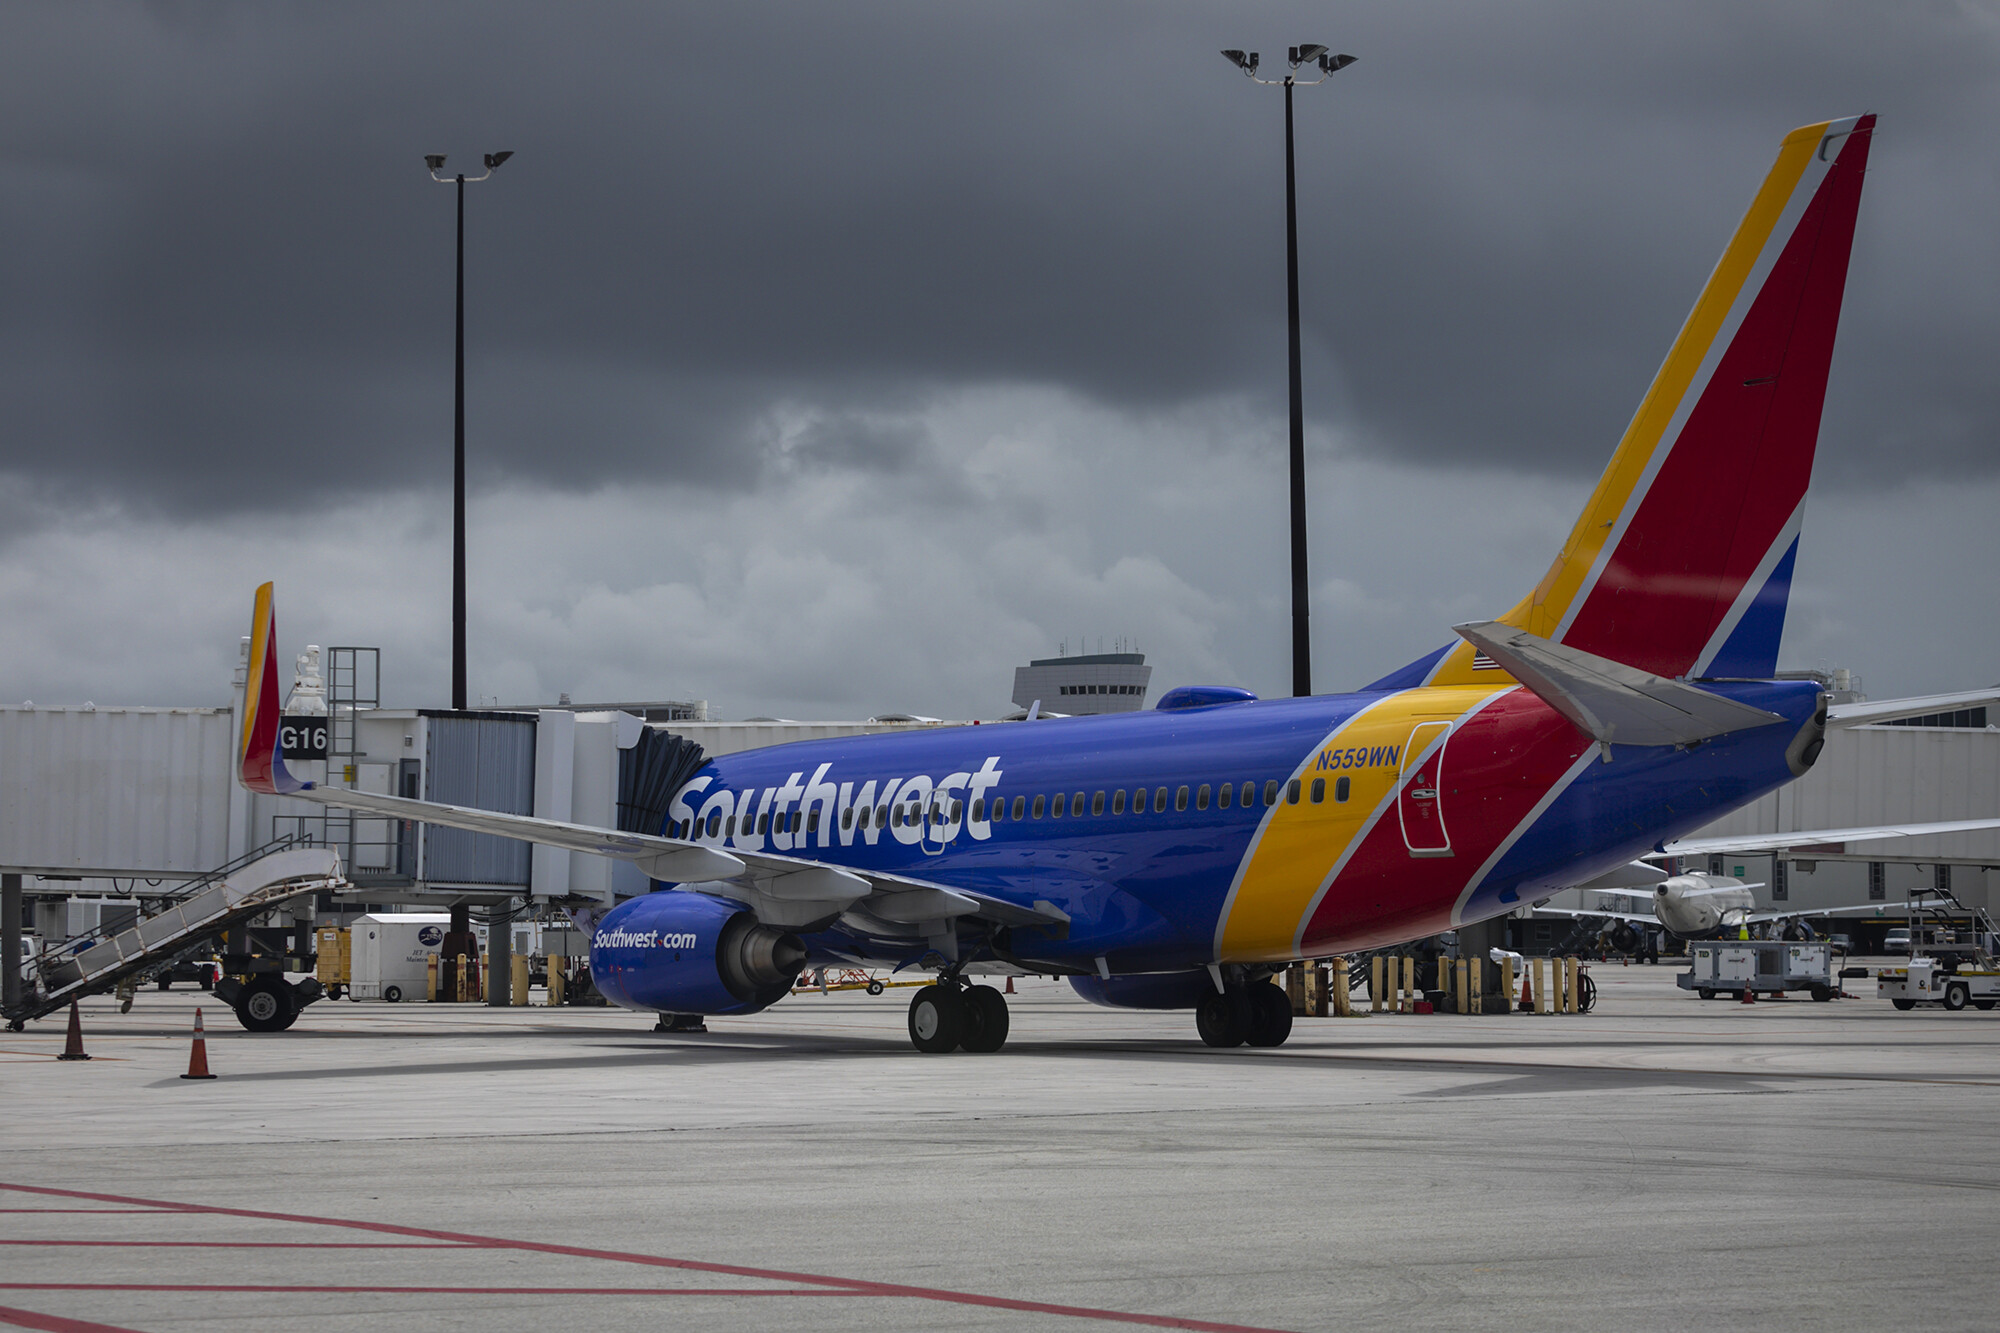 <i>Eva Marie Uzcategui/Bloomberg/Getty Images</i><br/>A Southwest Airlines plane on the tarmac at the Miami Airport in Florida.